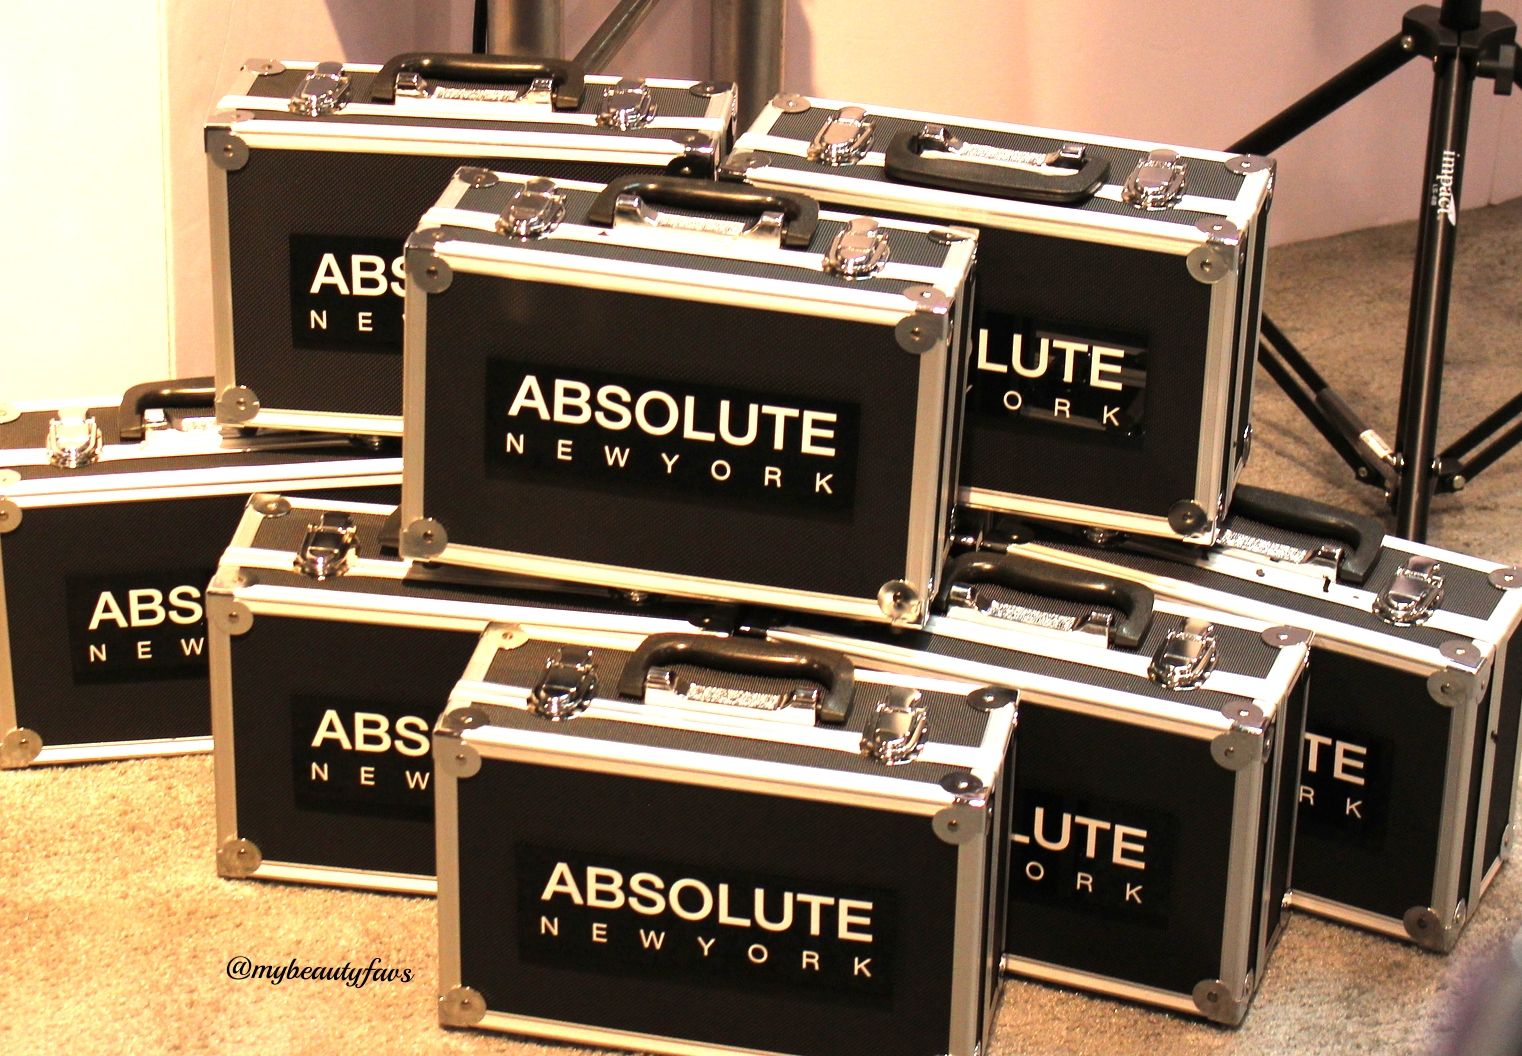 Absolute New York Booth